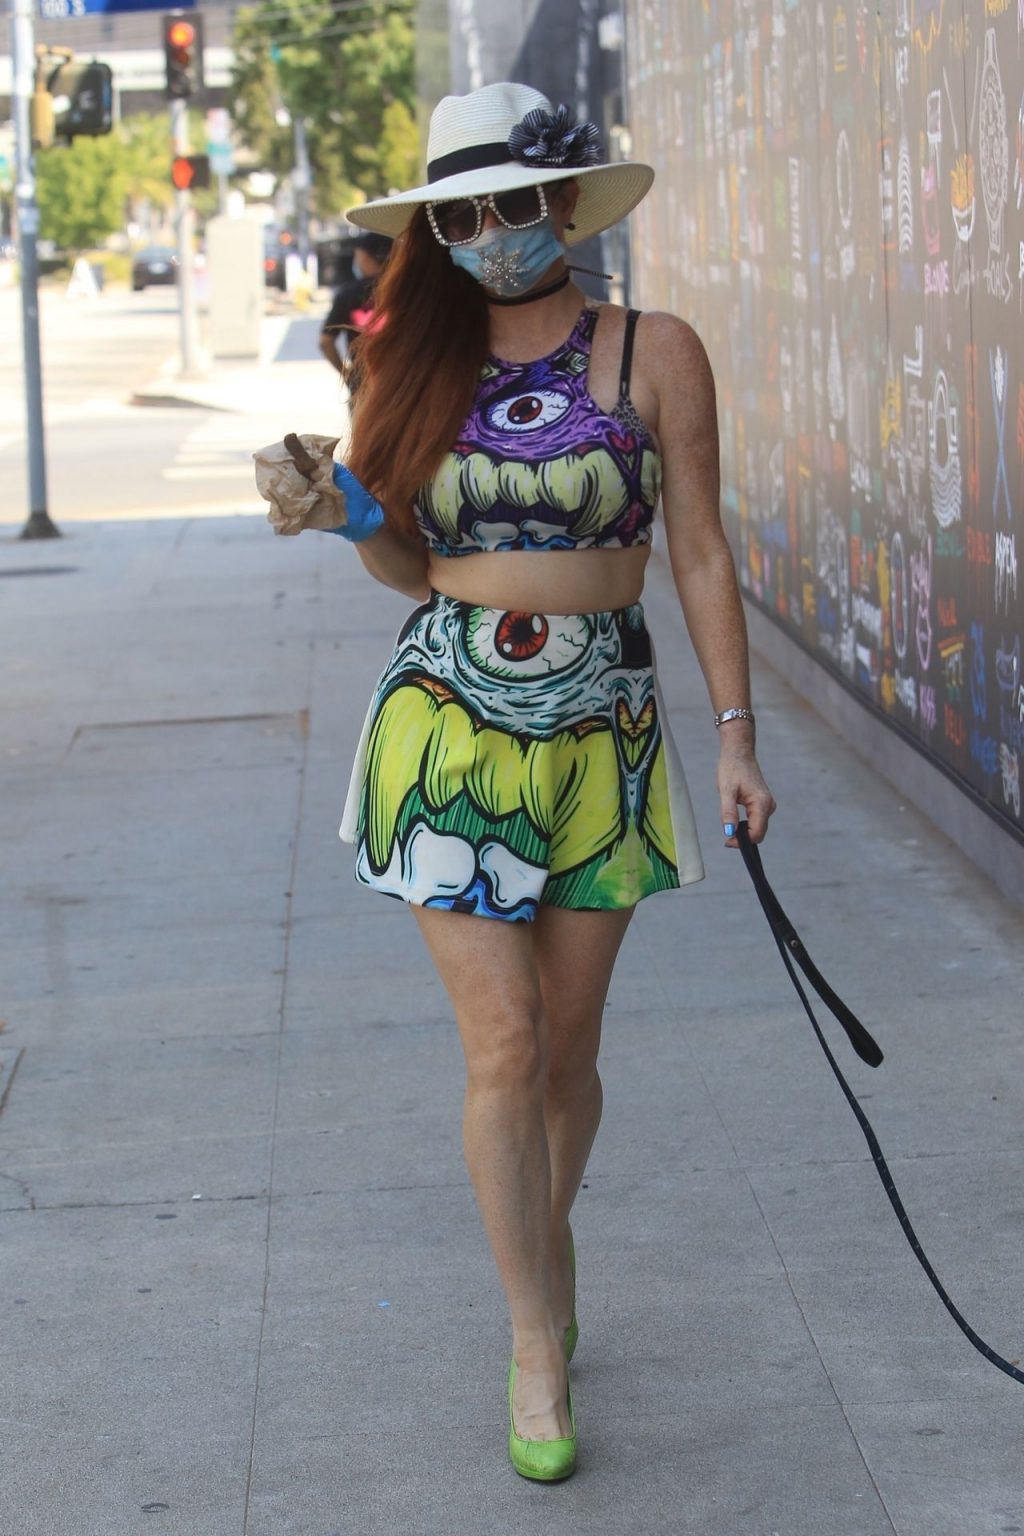 Phoebe Price Grabs a Snack at Pink's Hot Dogs (66 Photos)